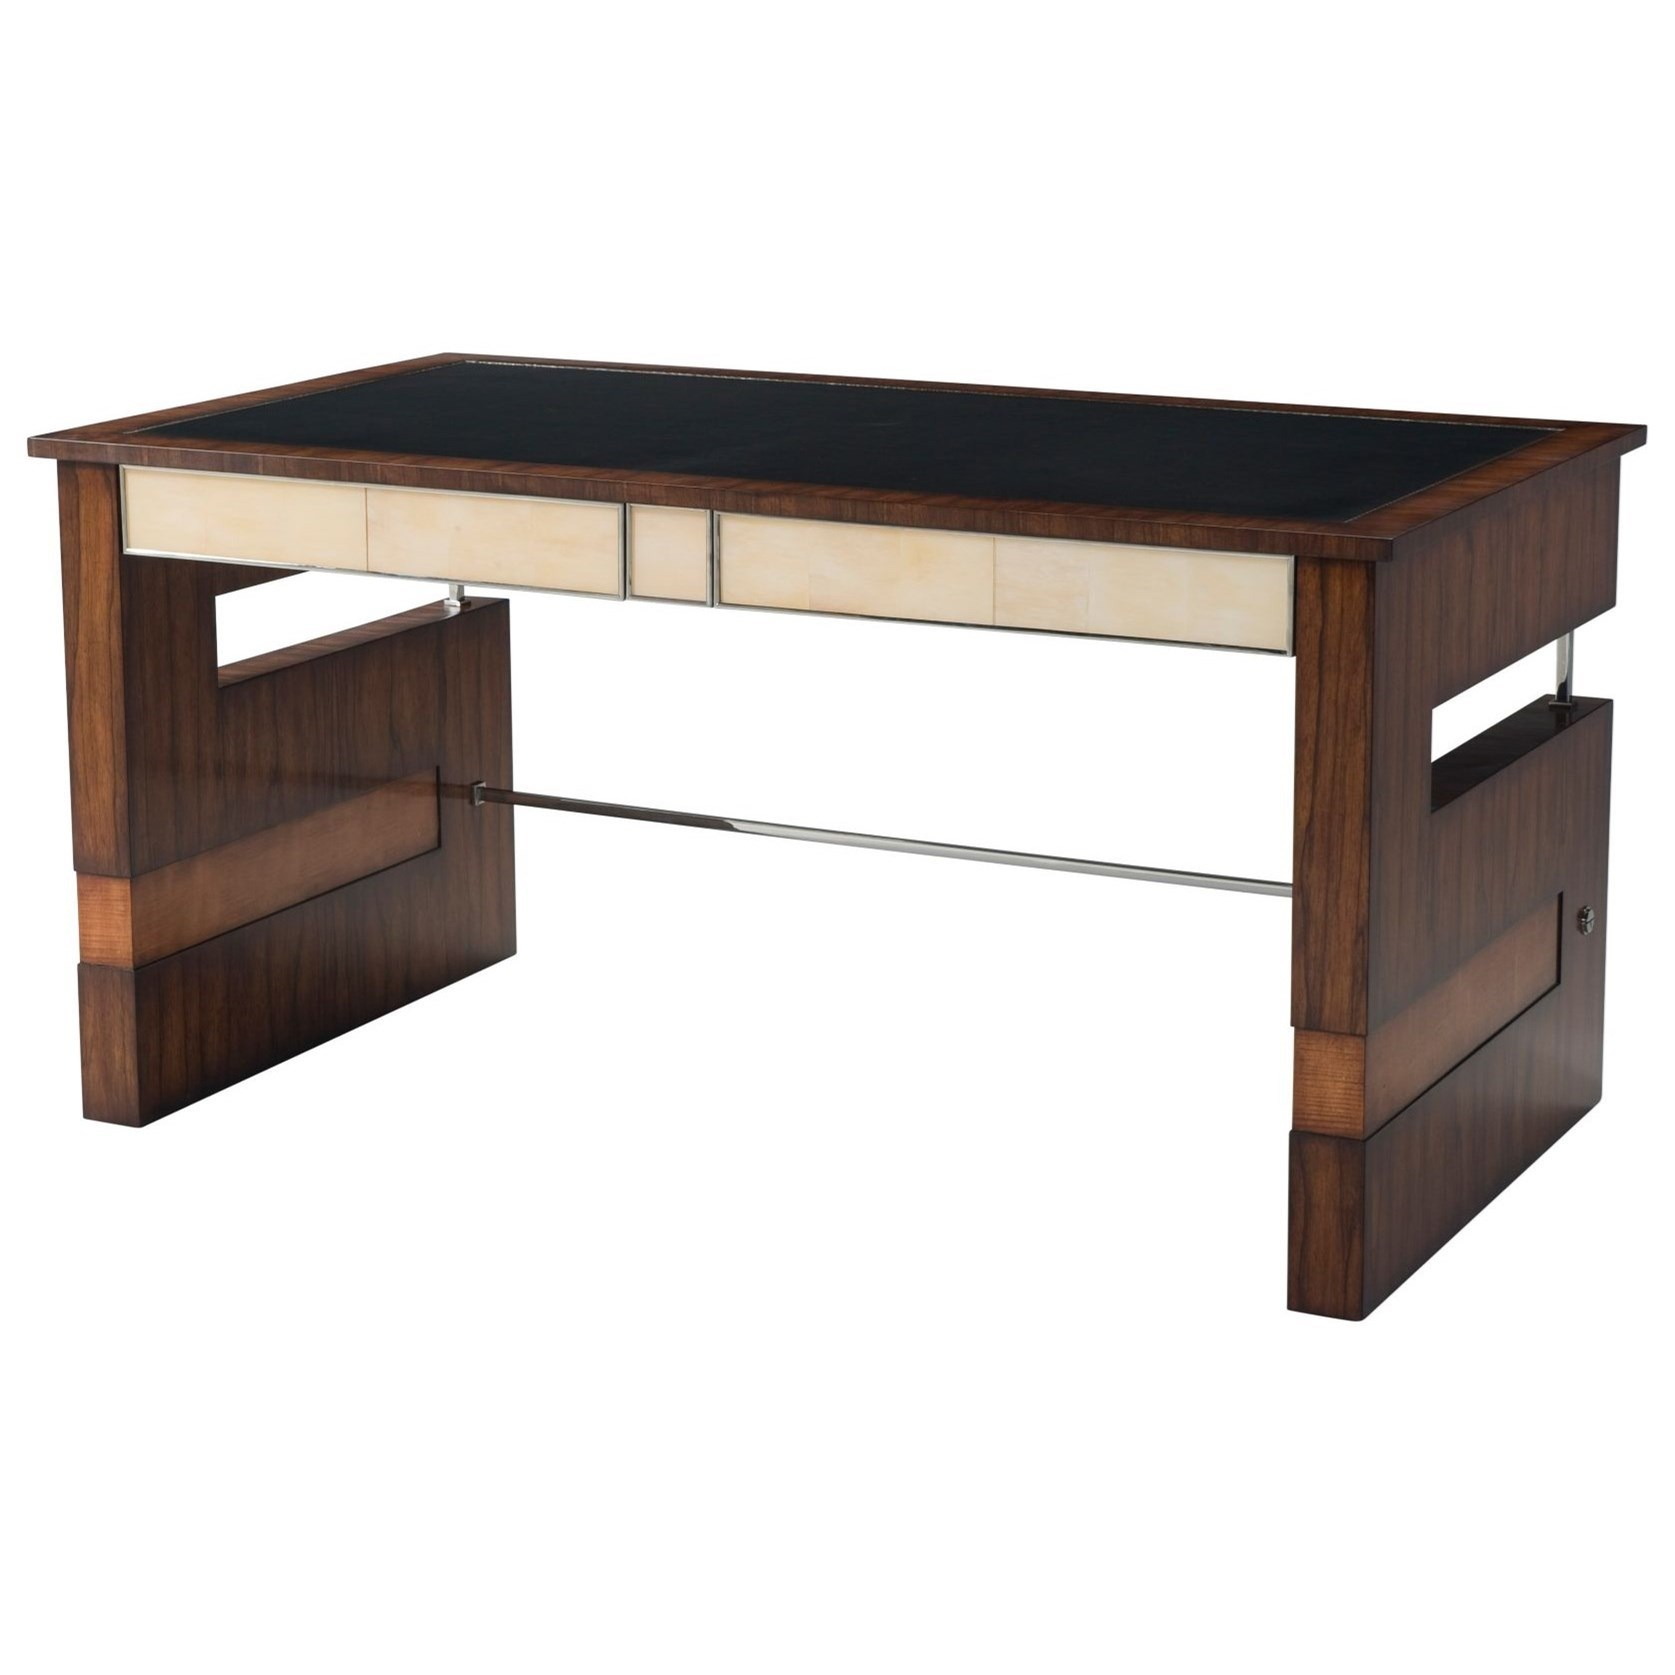 Vanucci Eclectics Striking Elements Writing Table by Theodore Alexander at Baer's Furniture